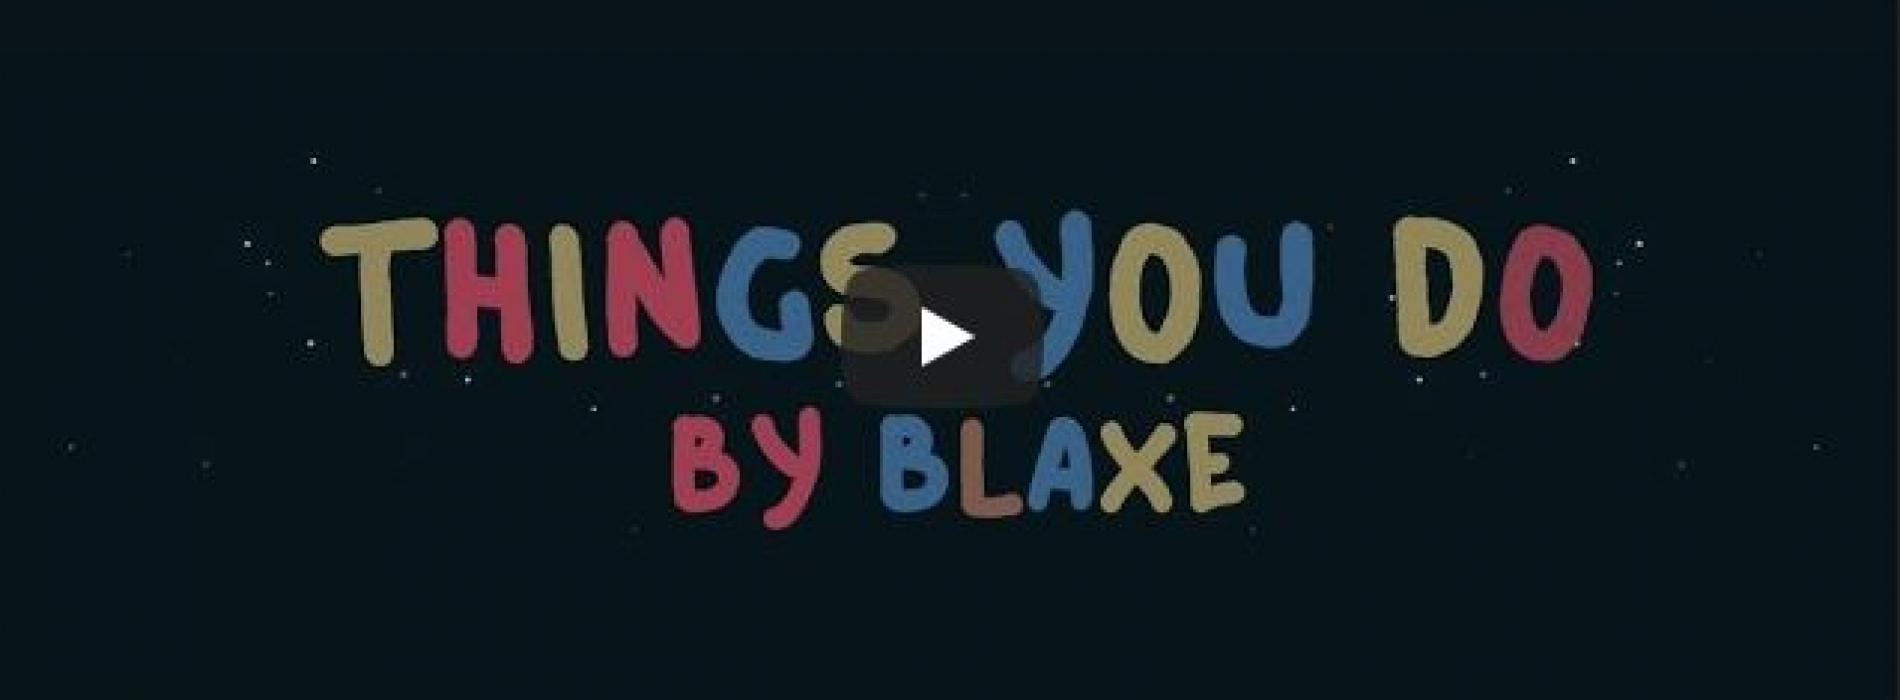 New Music : Things You Do – BLAXE (Official Lyric Video)